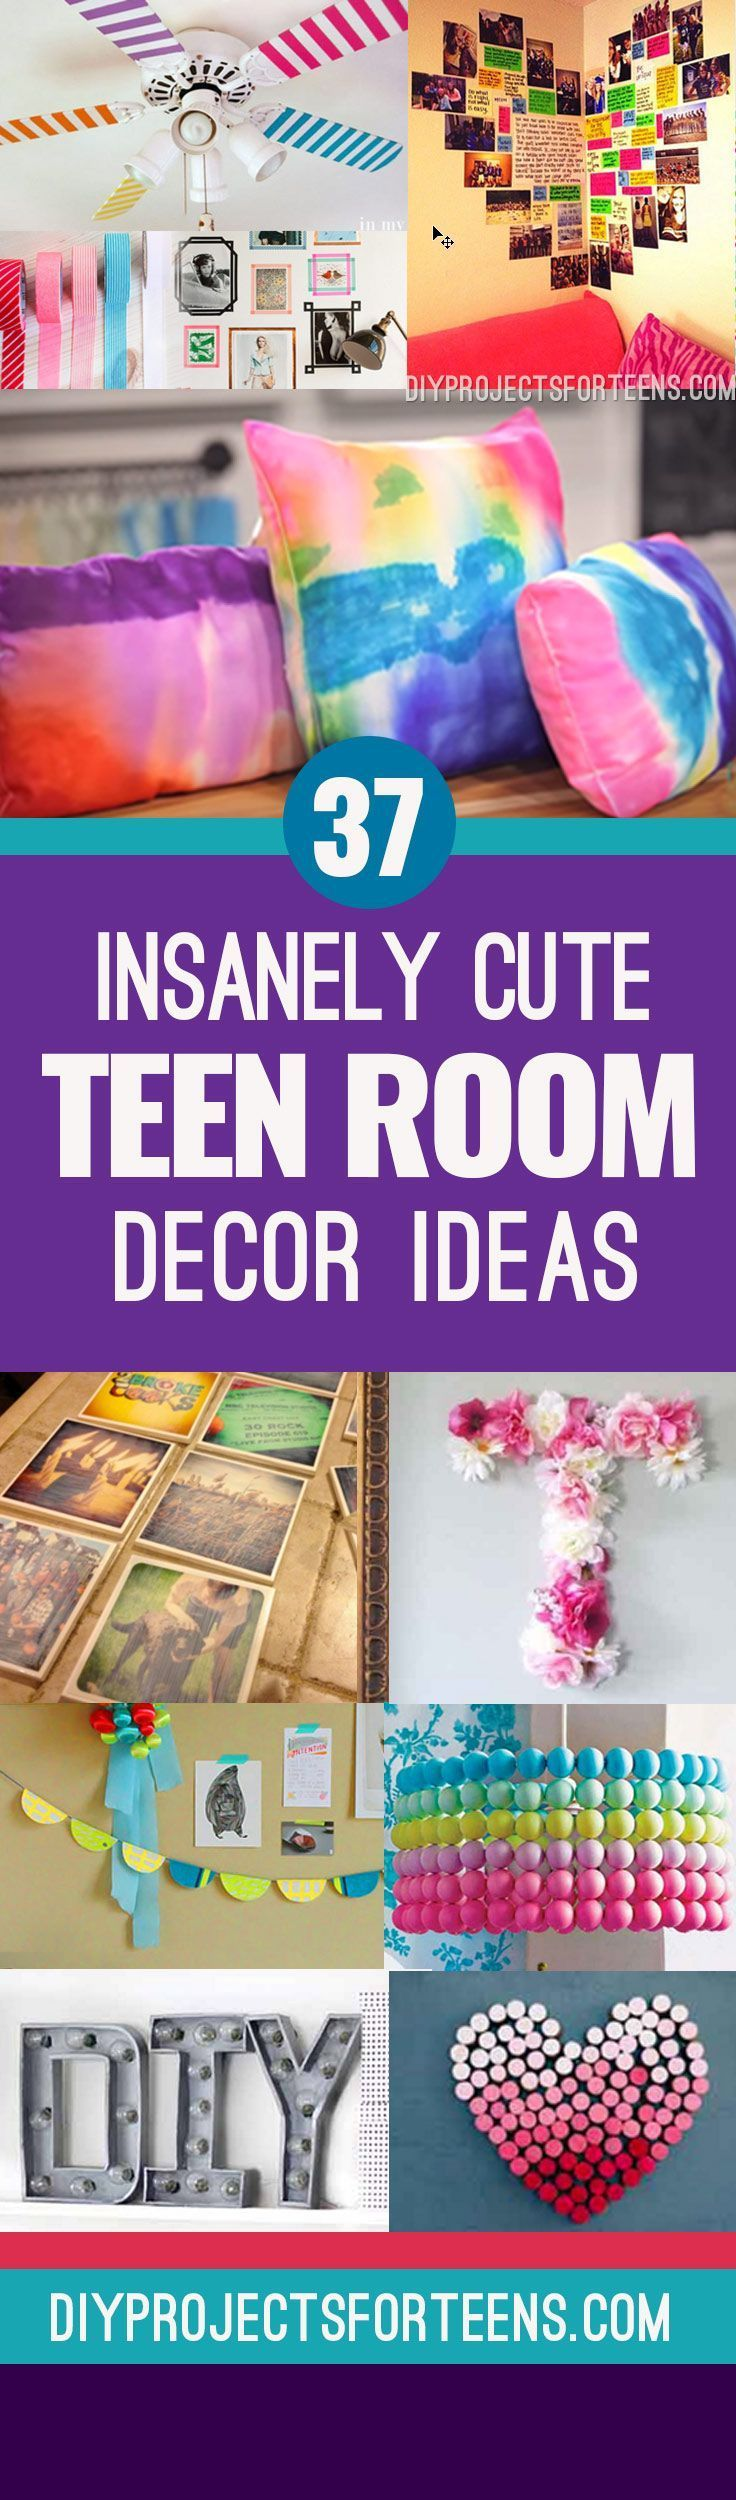 37 insanely cute teen bedroom ideas for diy decor girls for Bedroom decor and accessories